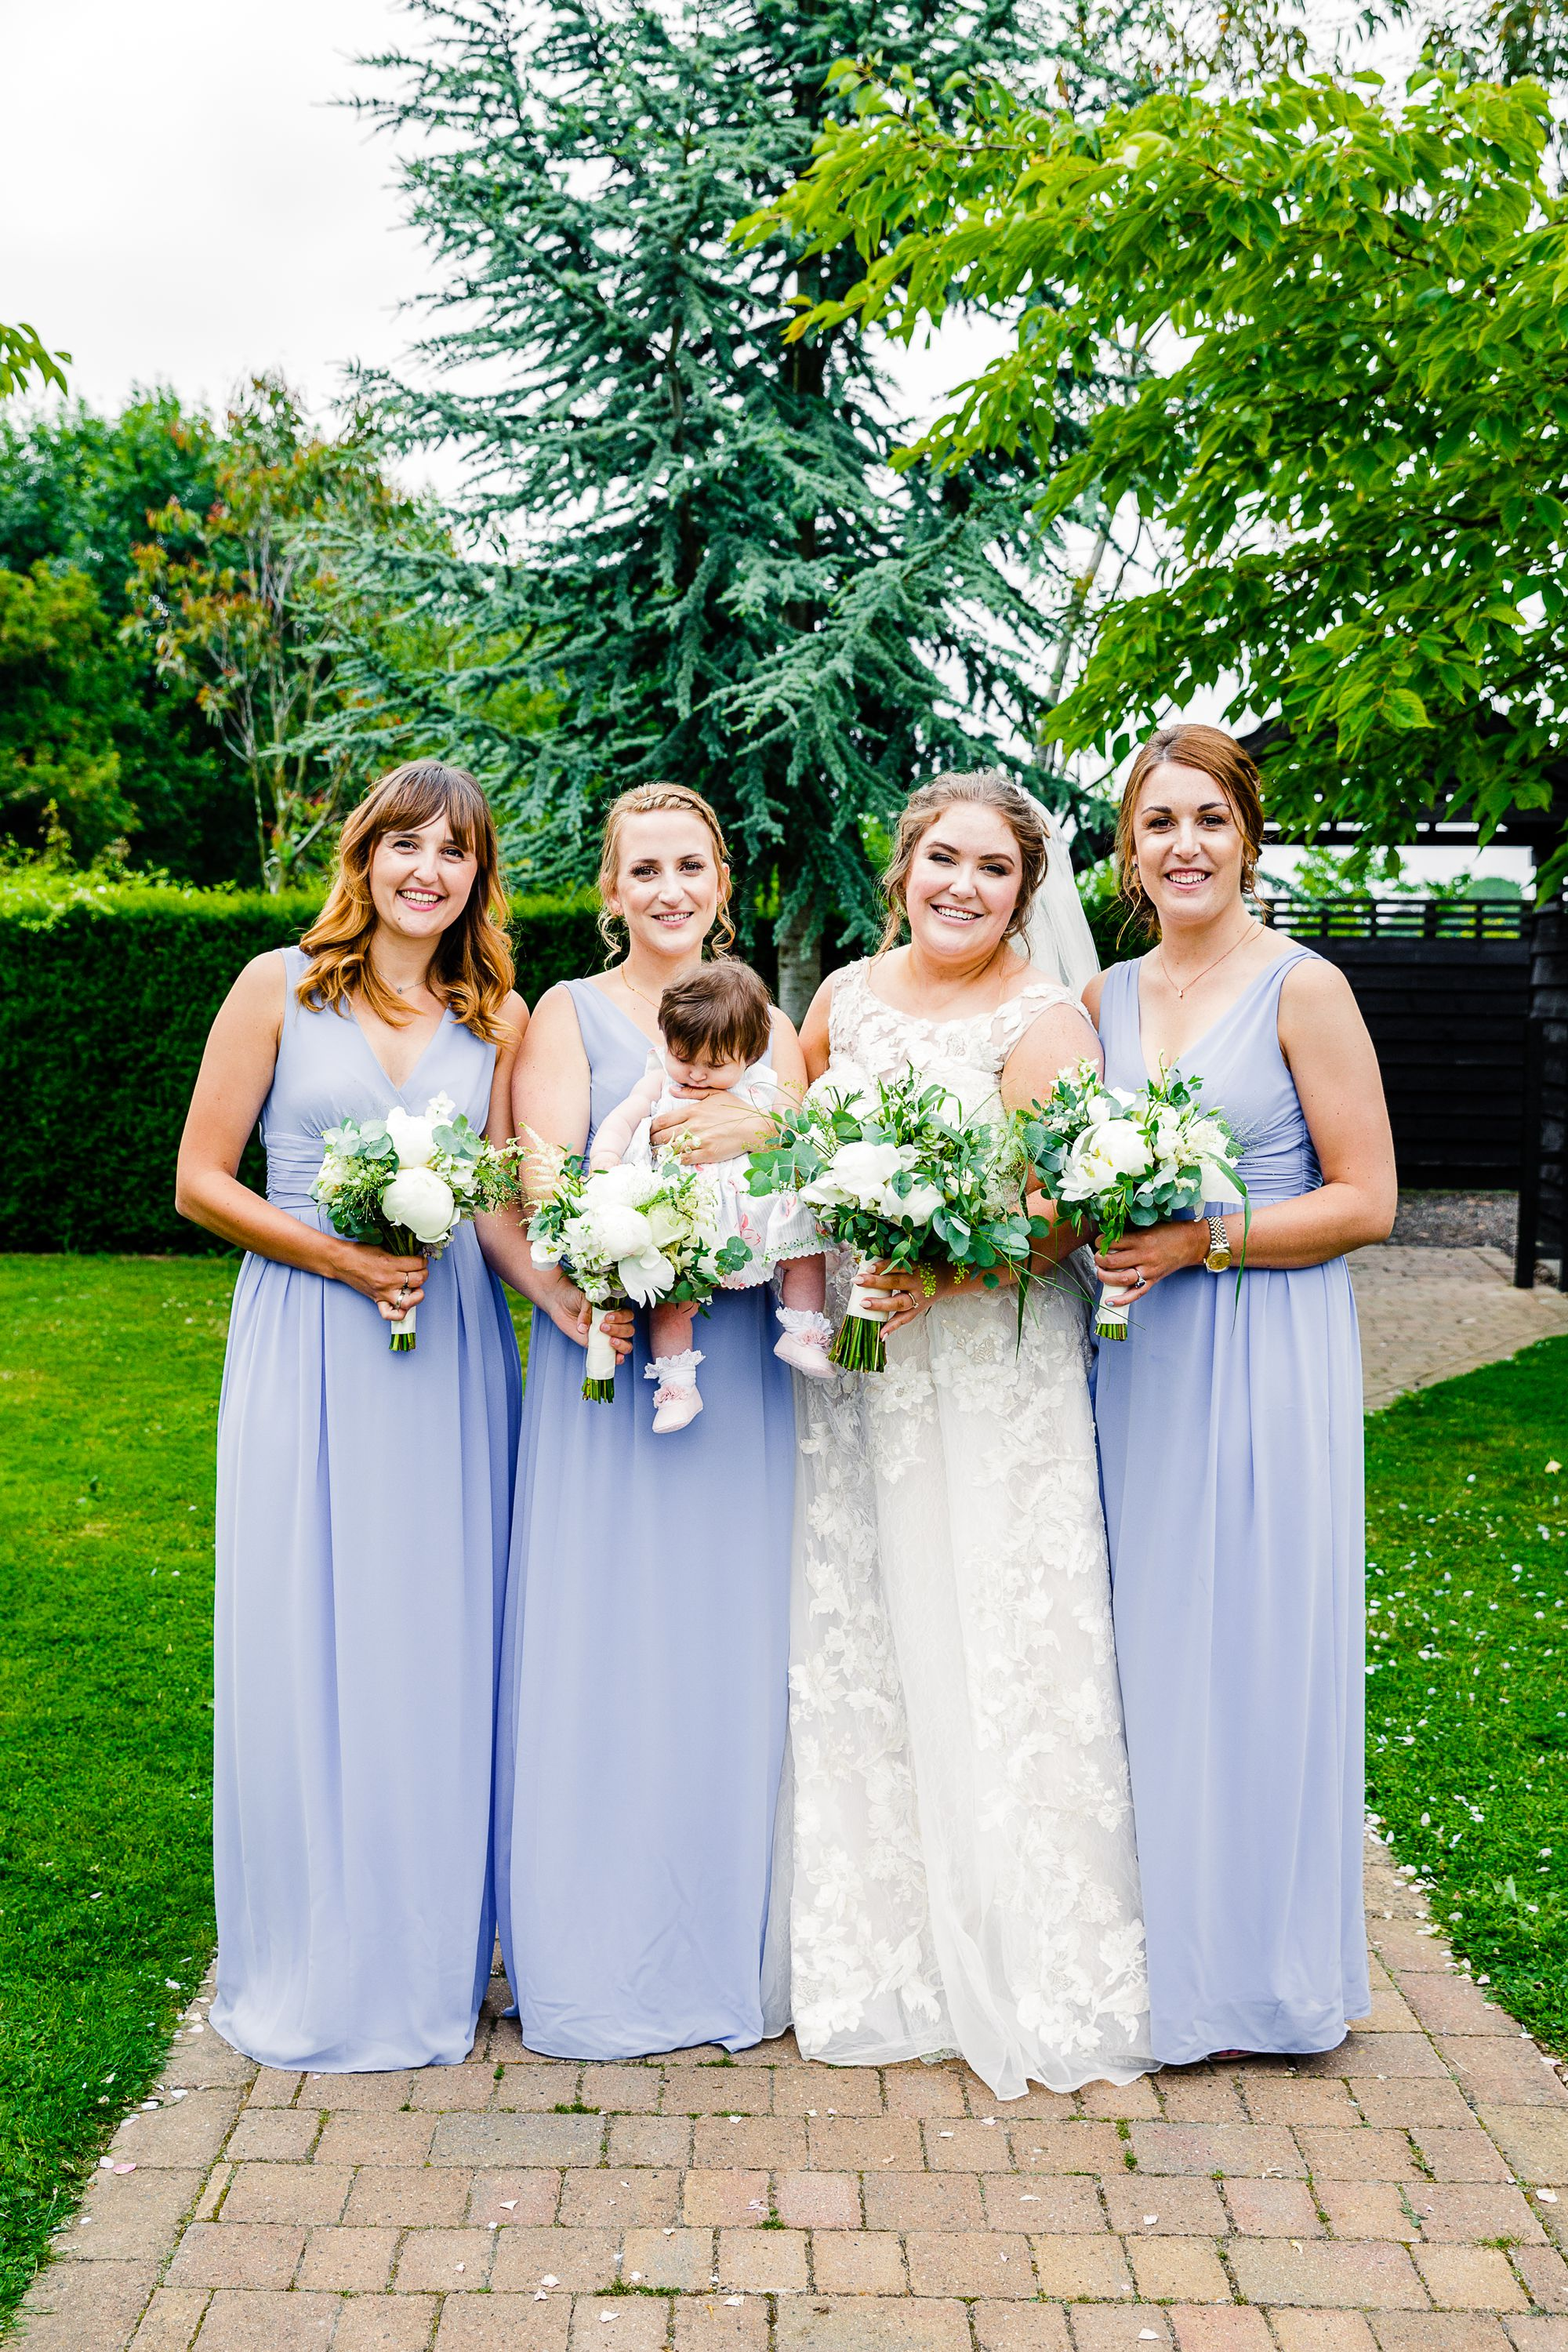 Maidens-Barn-Essex-Wedding-Photographer_0057.jpg